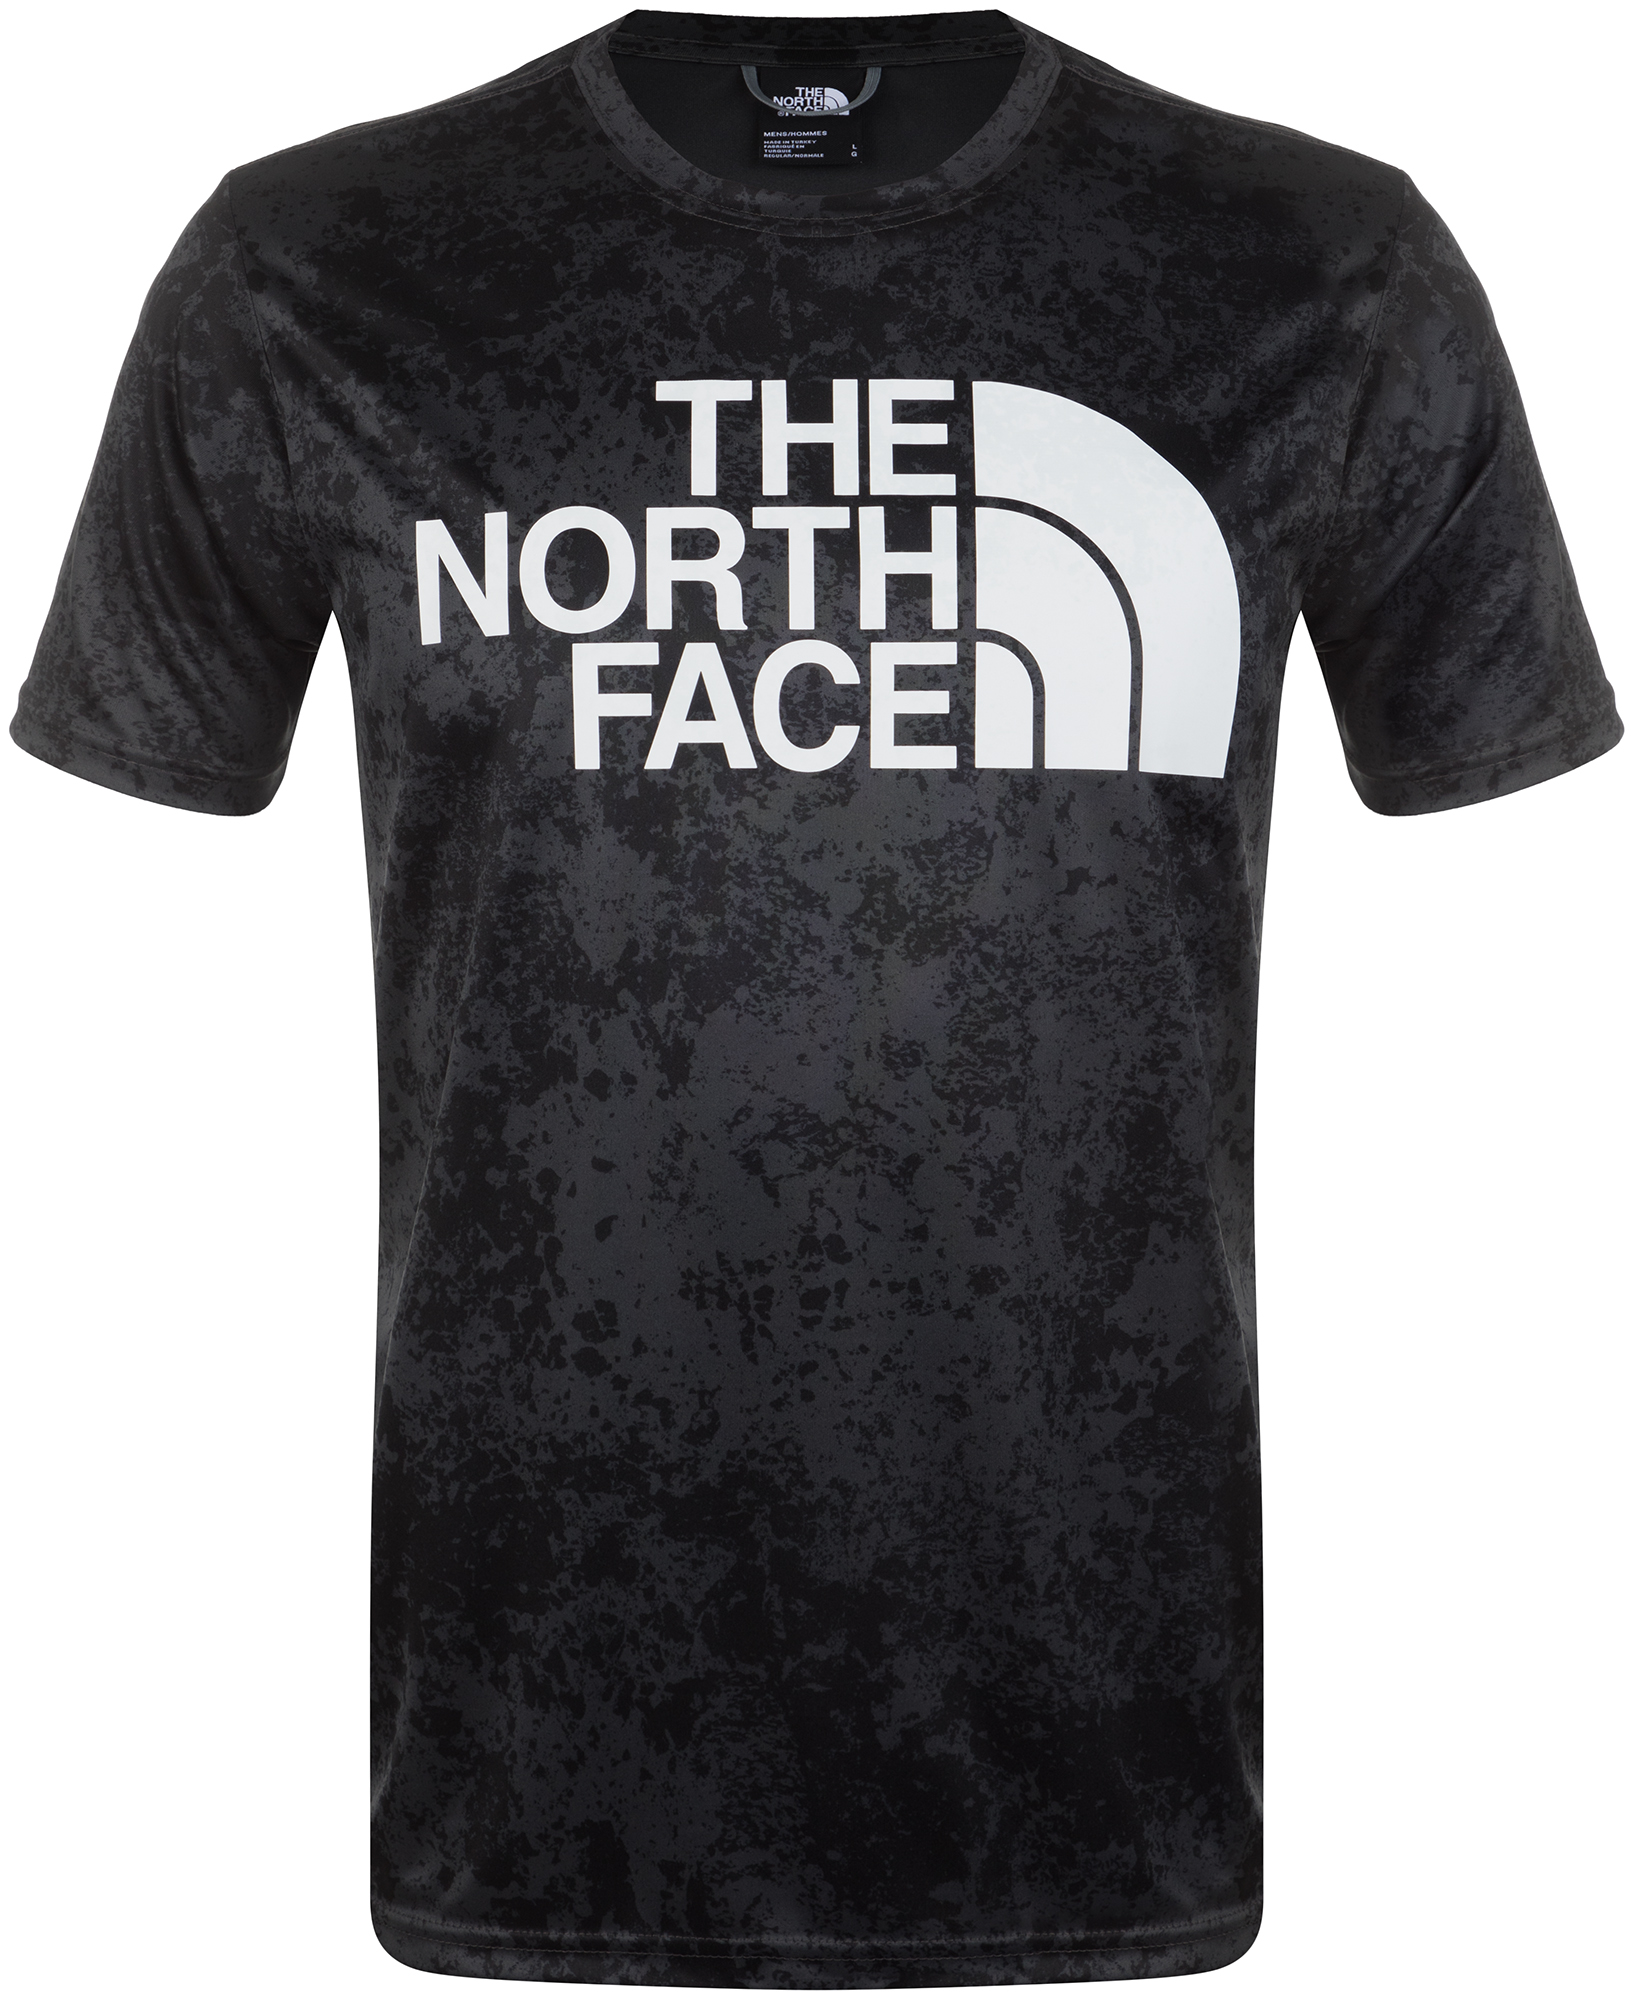 The North Face Футболка мужская The North Face Reaxion Easy, размер 50 недорого